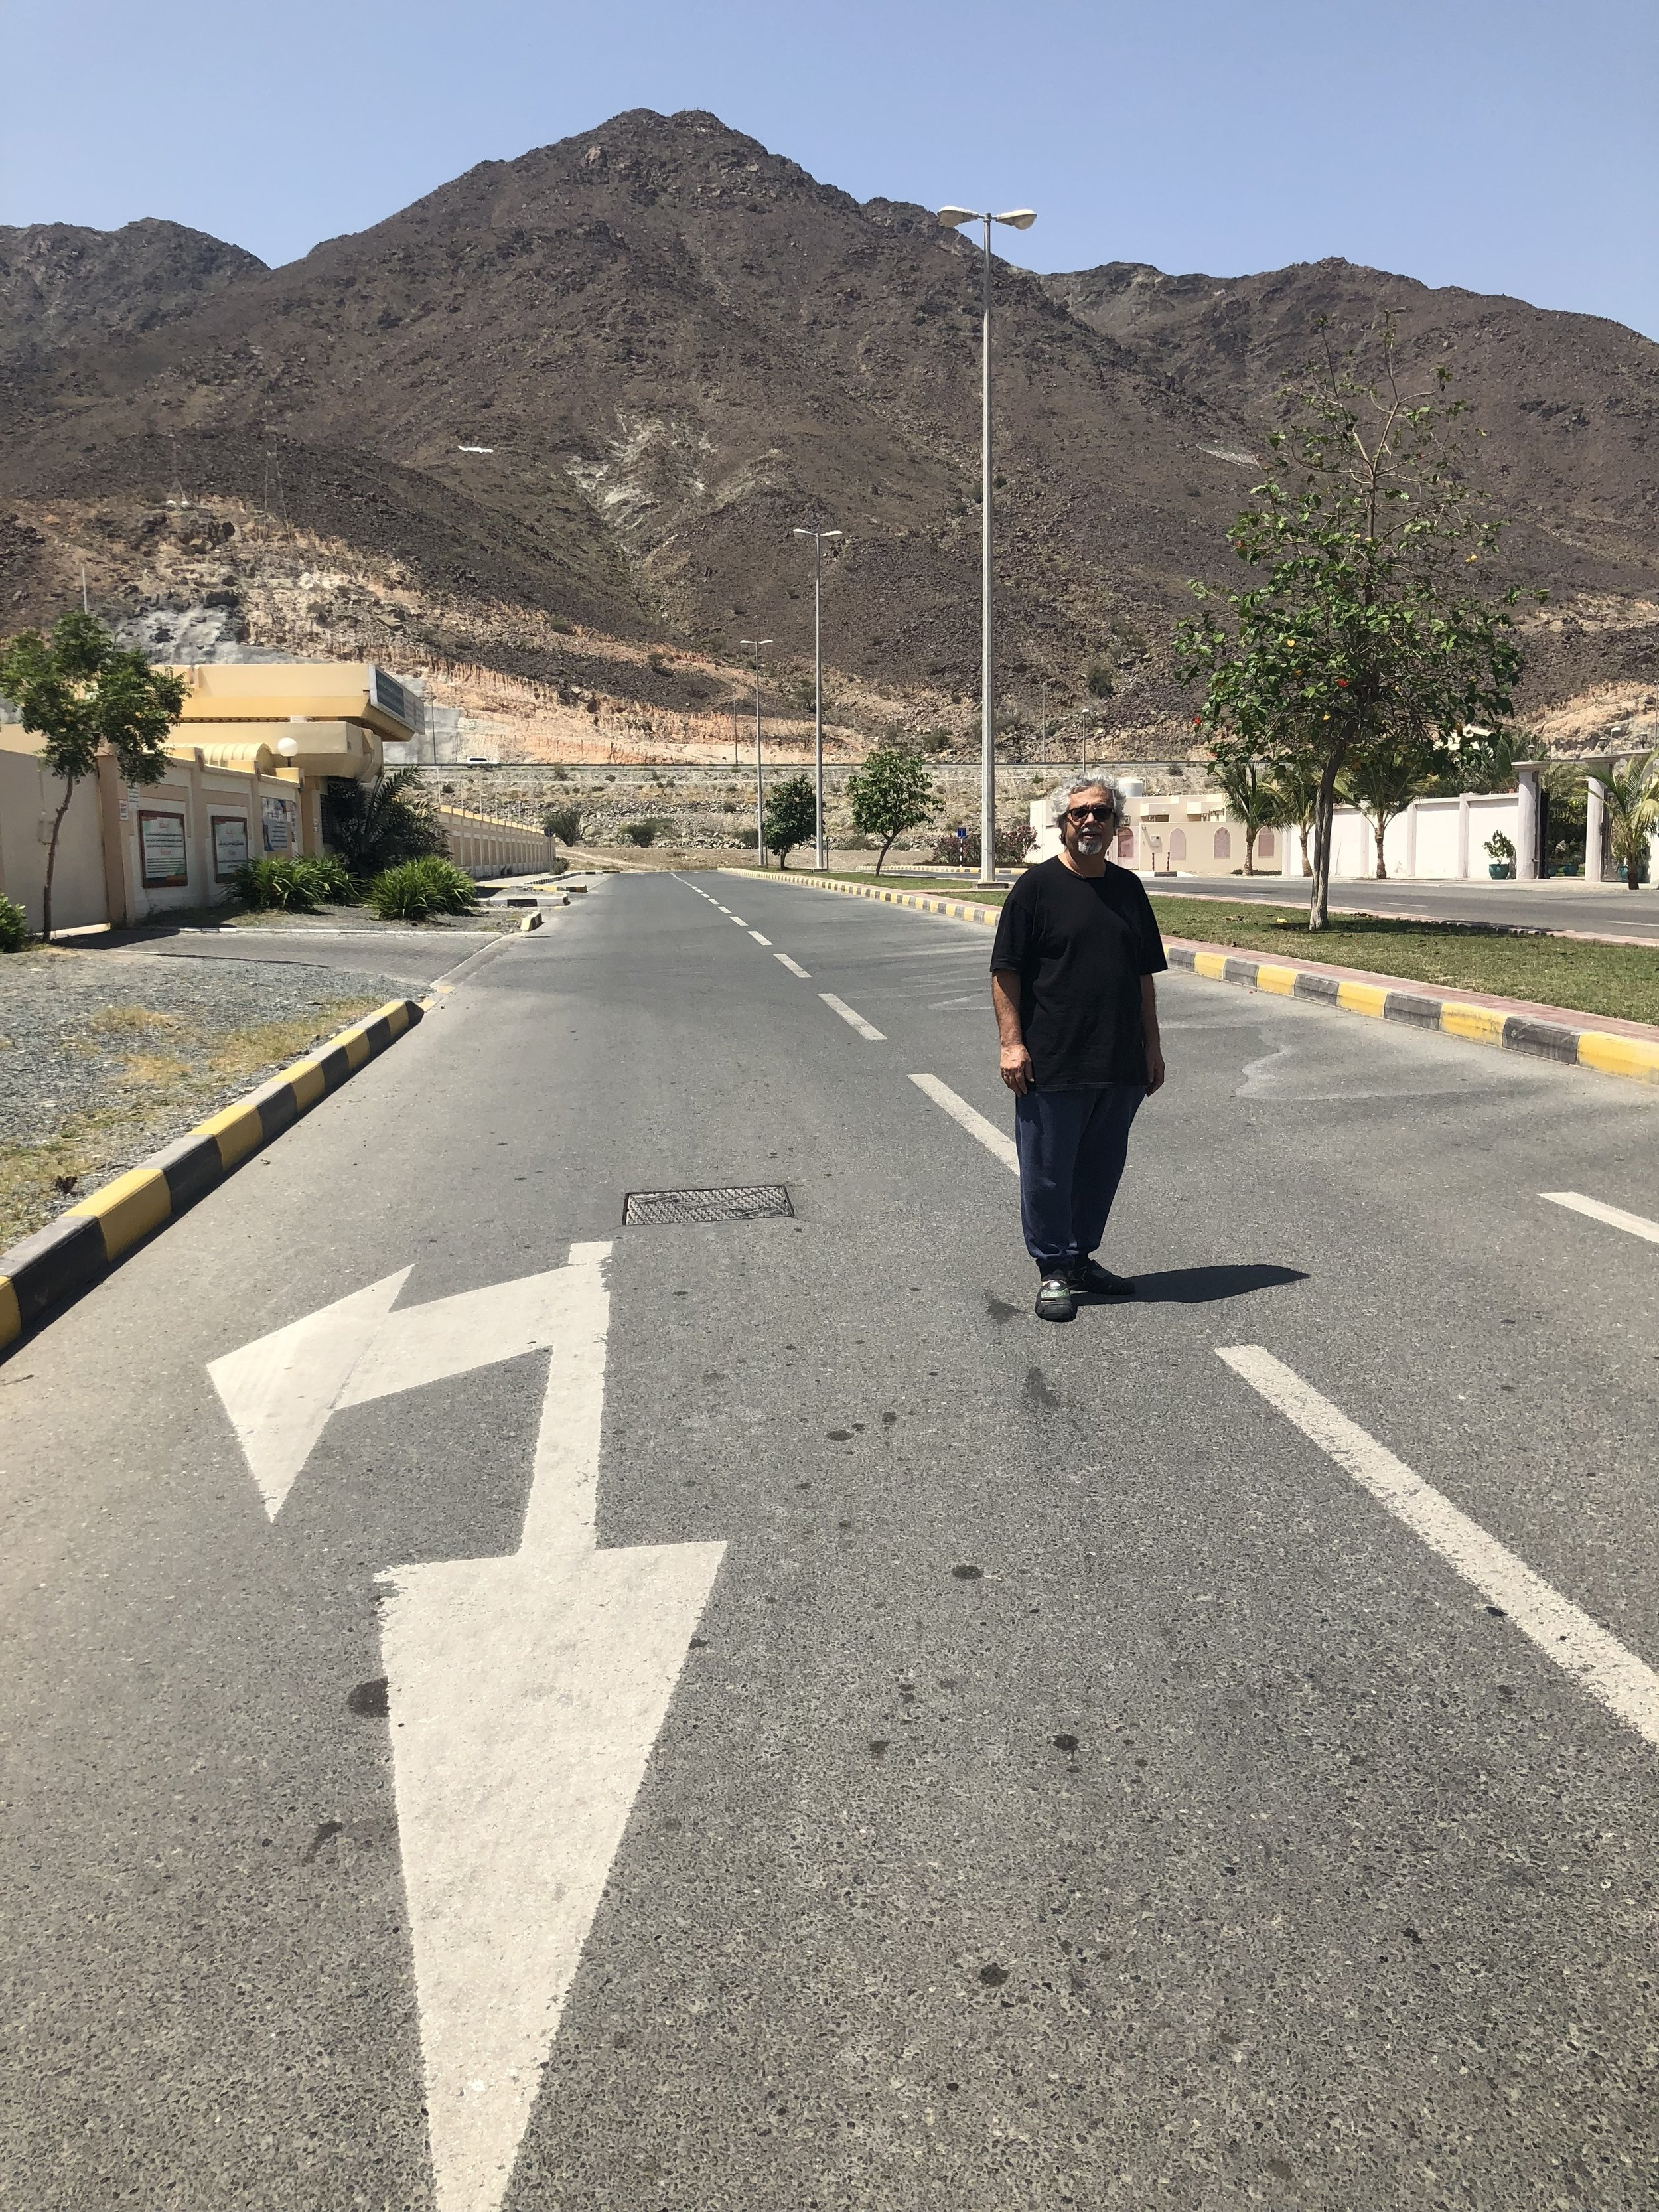 Mohammed Ahmed Ibrahim standing at the foot of the mountain outside his home in Khorfakkan. Image taken by Anna Seaman on March 27, 2018.